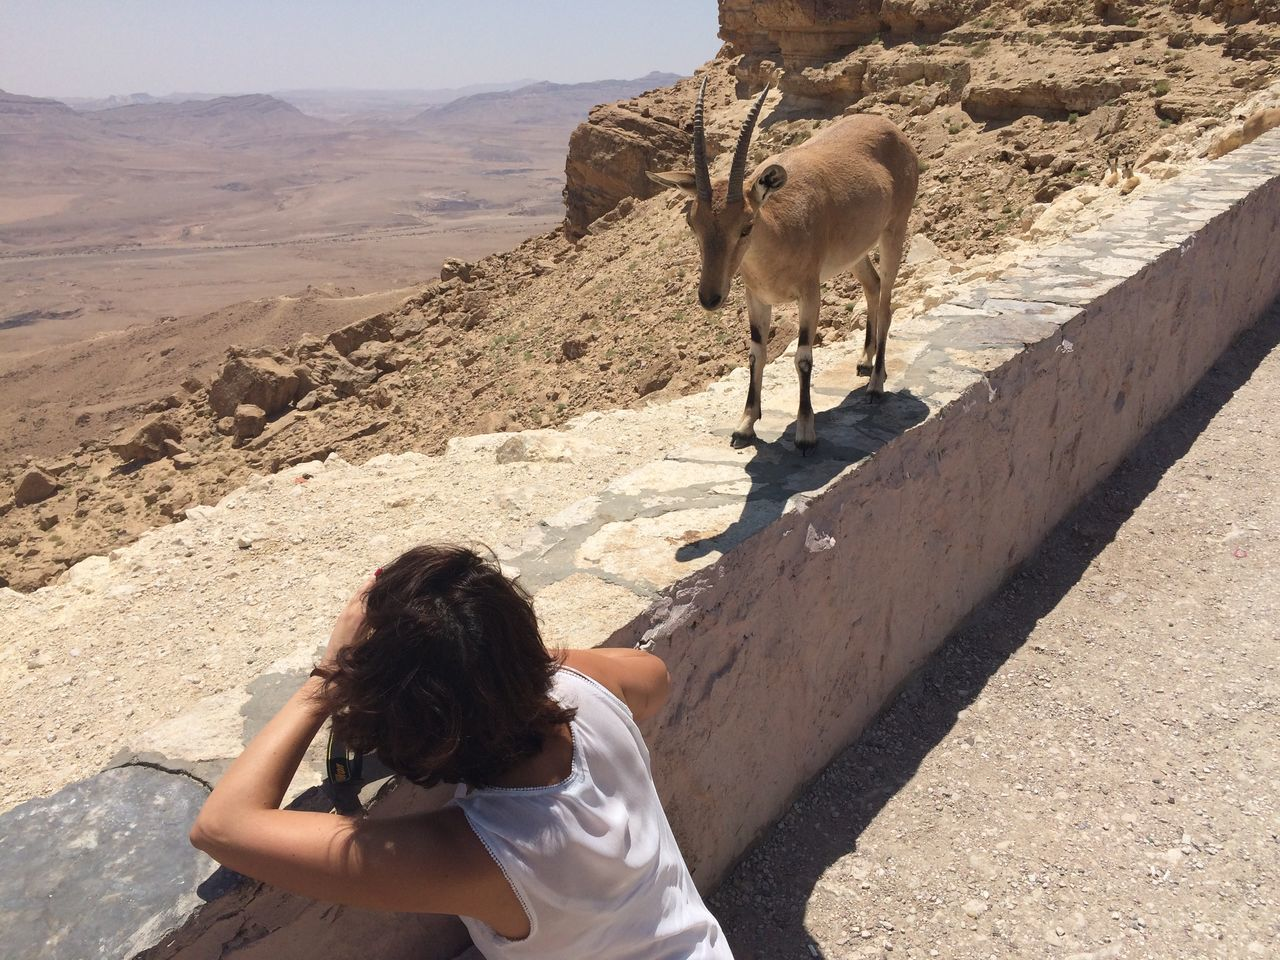 Animal Themes Animal Wildlife Animals In The Wild Arid Climate Beauty In Nature Deer Desert Desert Desert Beauty Domestic Animals Gazelle Landscape Looking At Camera Mammal Mountain Range Nature One Person Outdoors People Rear View Stag Taking Photos Travel Travel Destinations Young Women